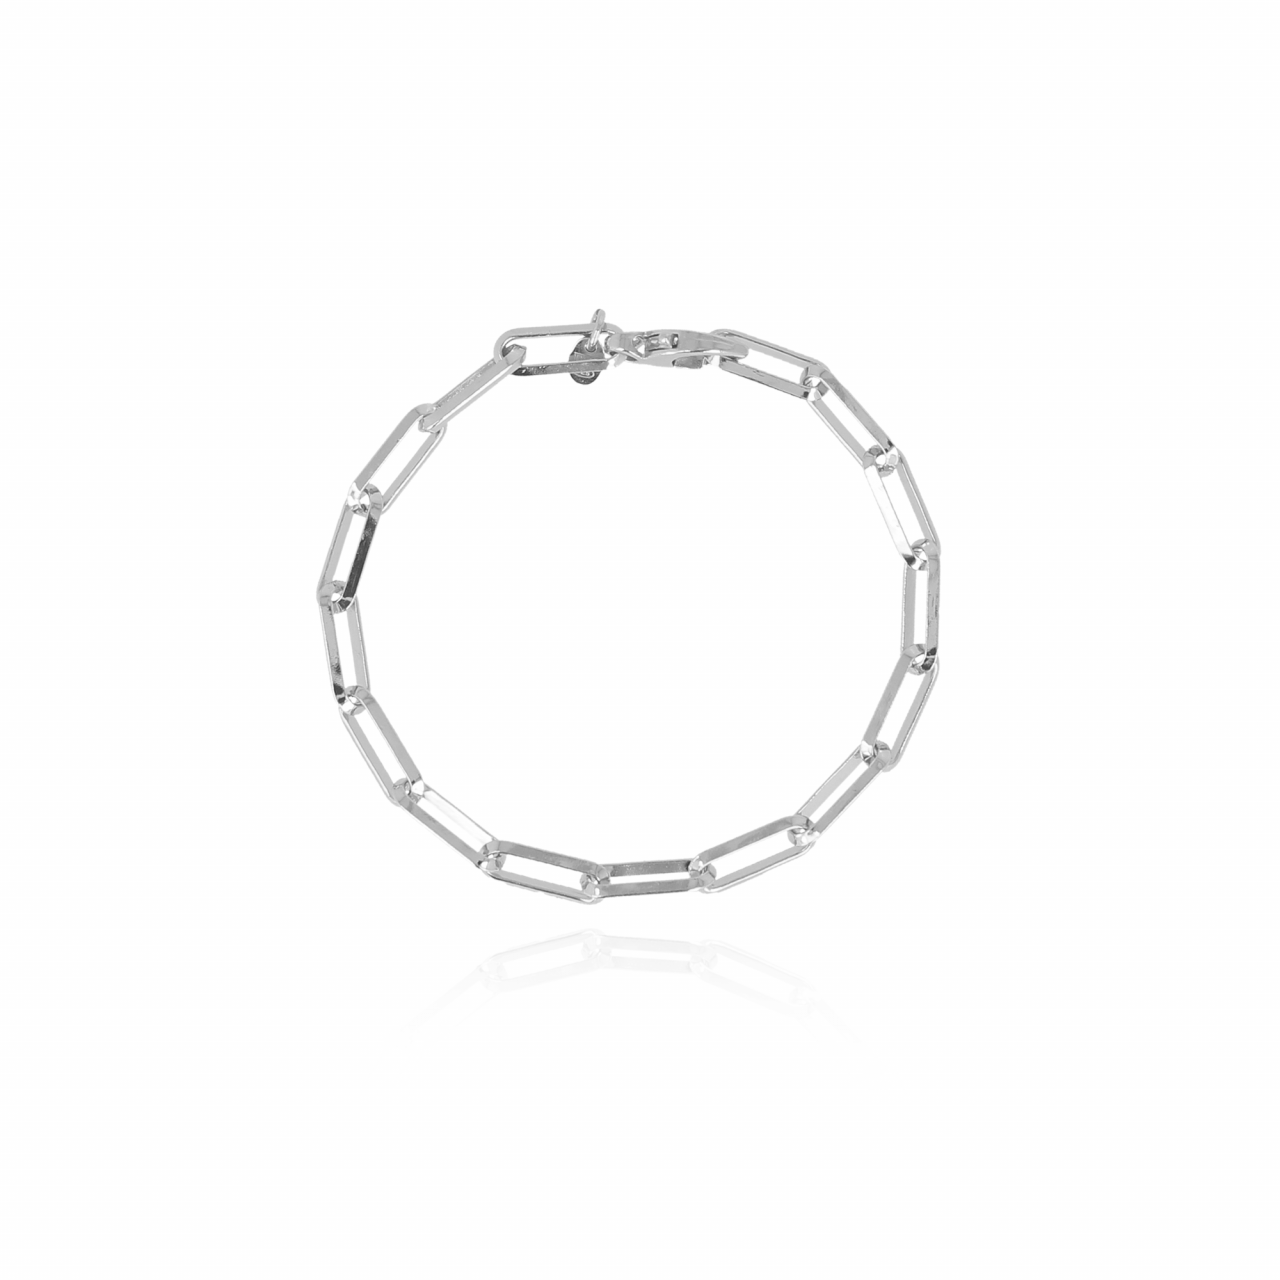 Silver closed forever M chain bracelet